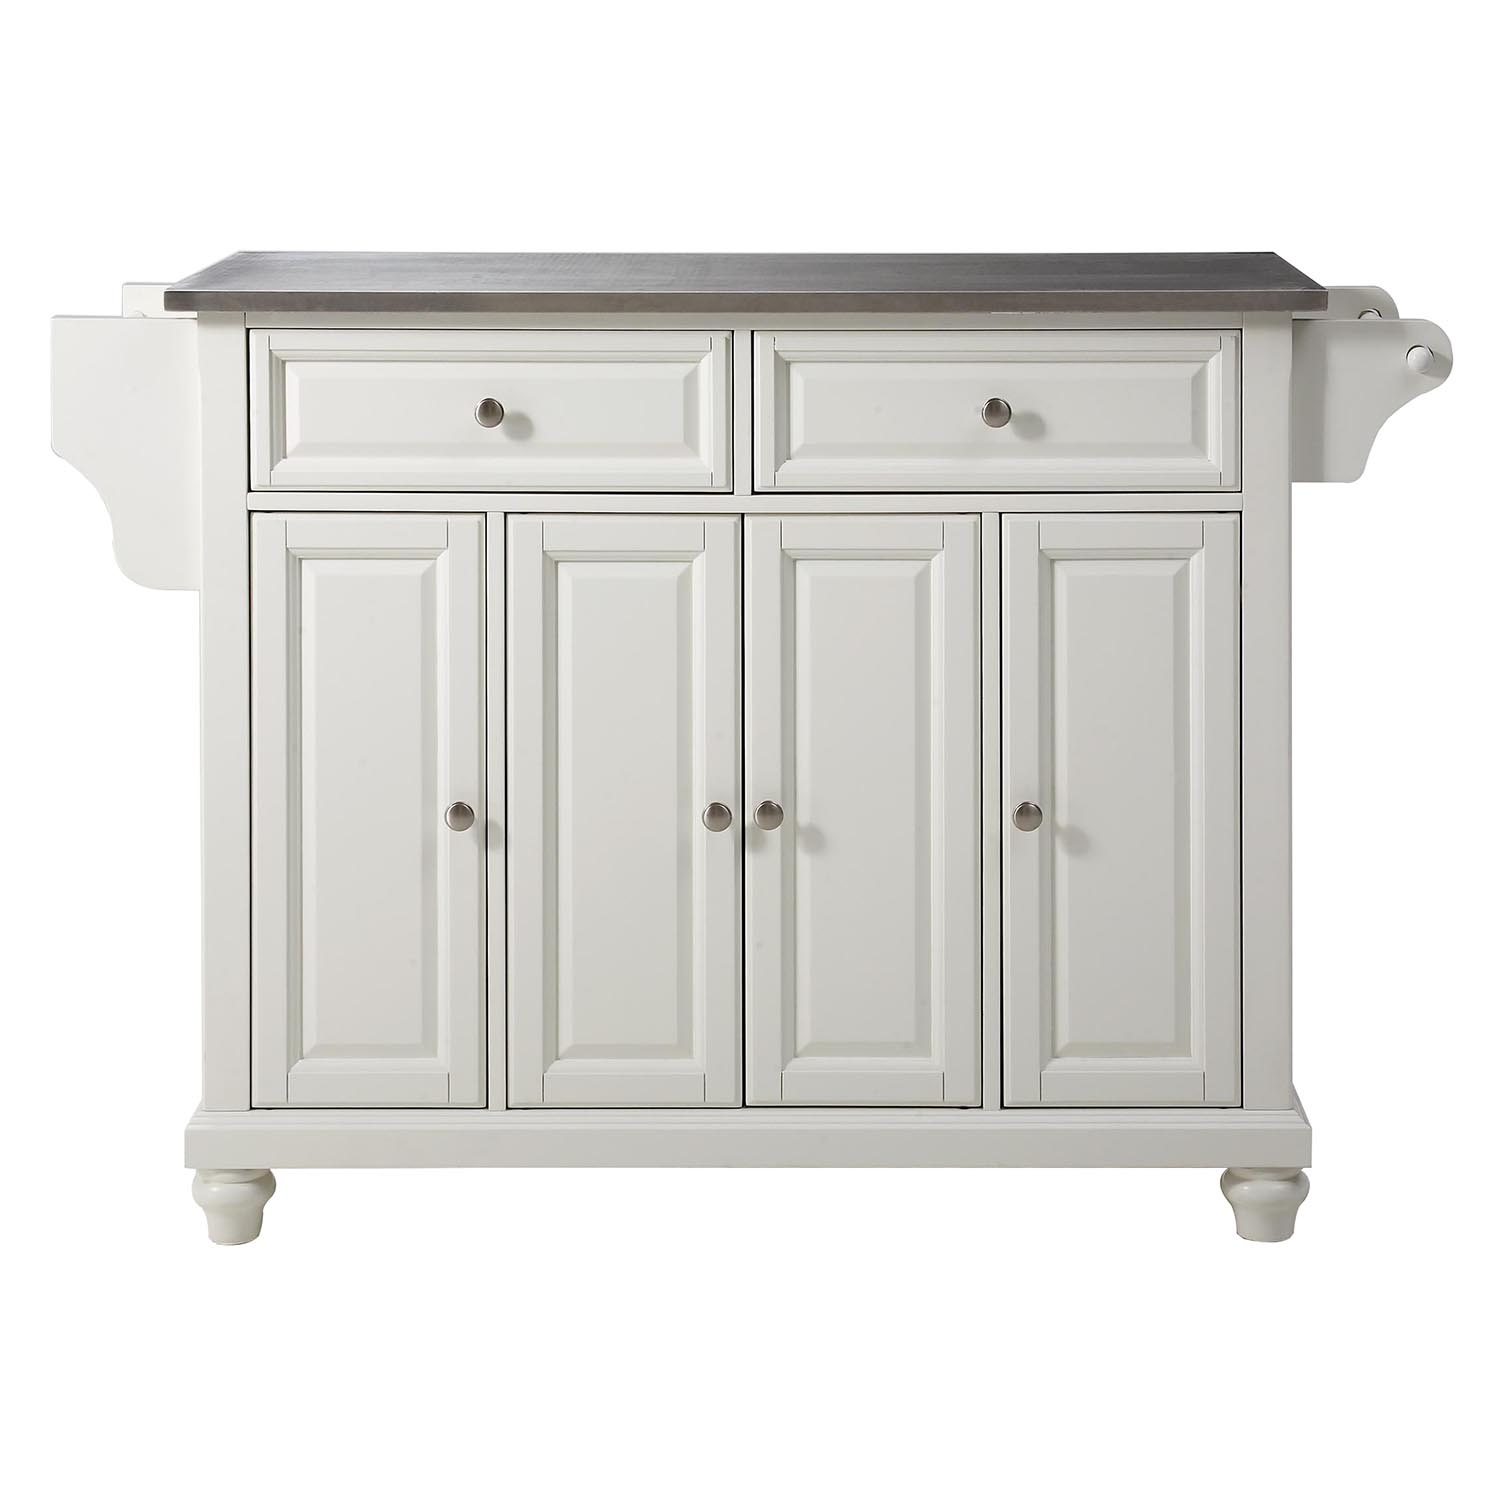 white kitchen island with stainless steel top cambridge stainless steel top kitchen island white dcg stores 2425